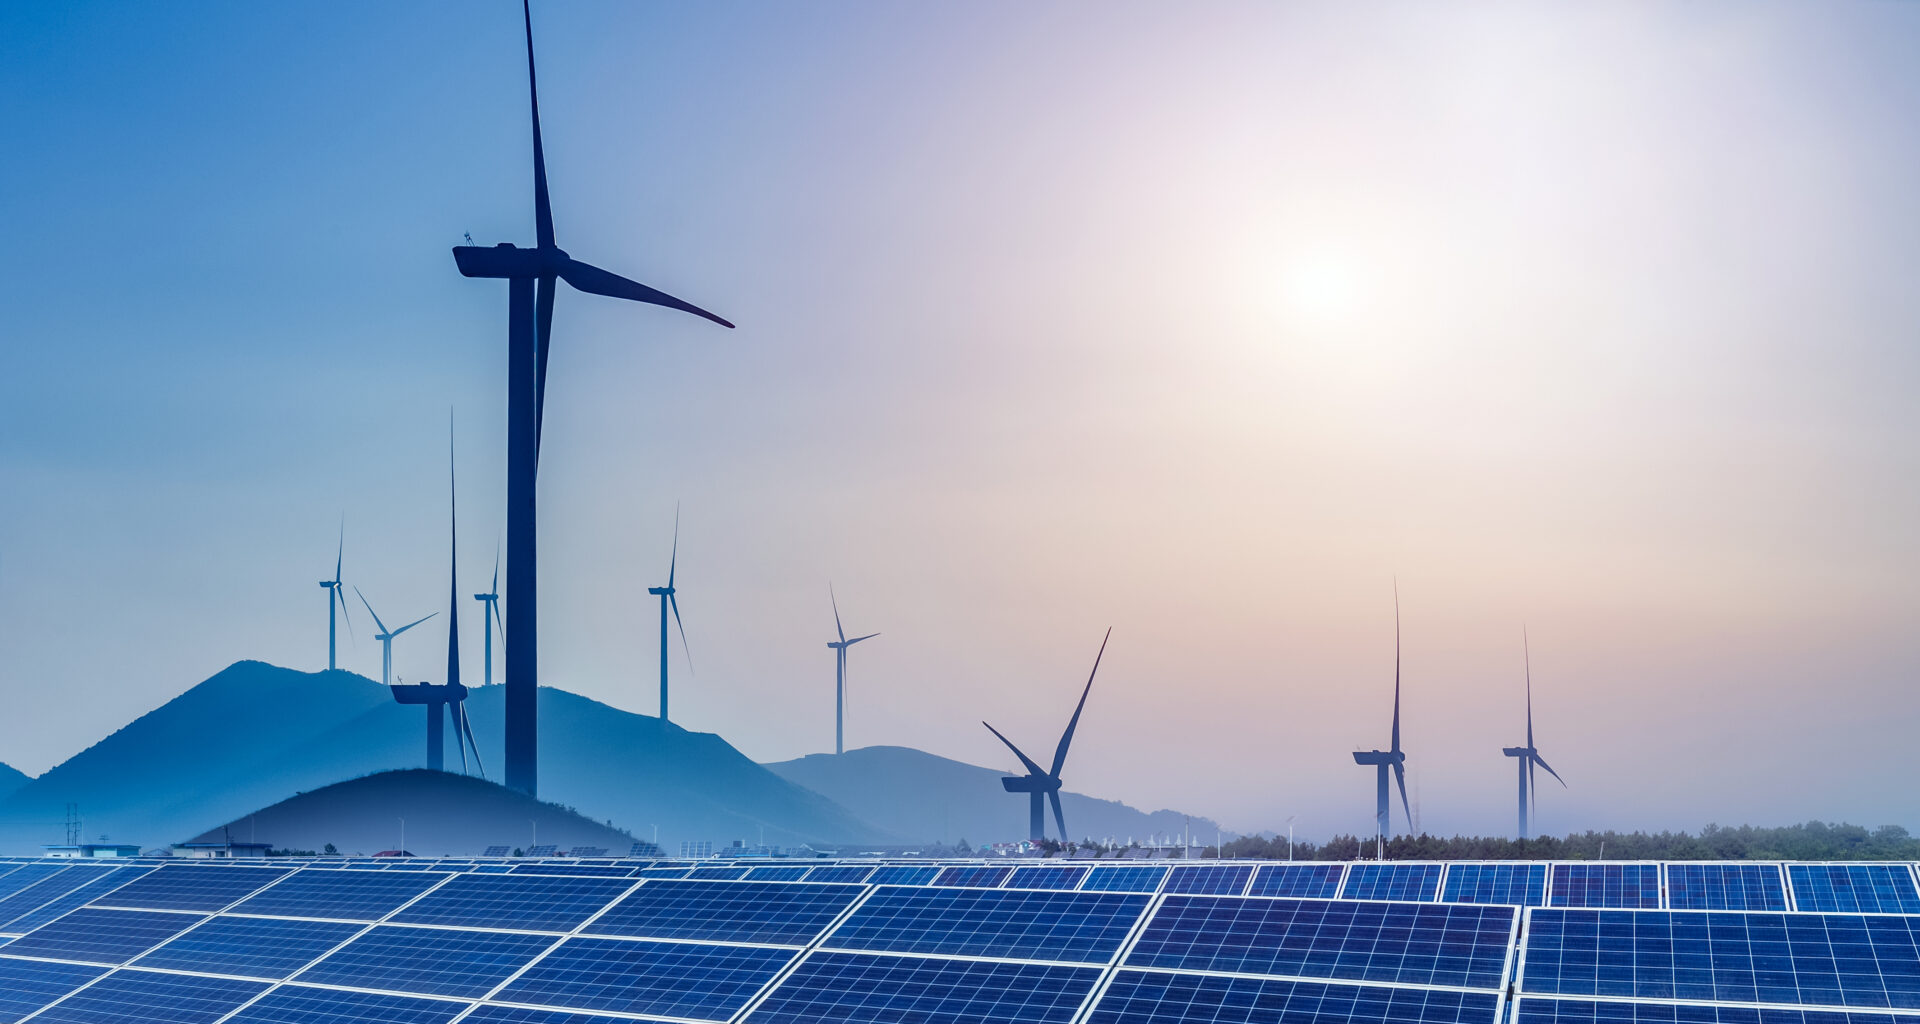 A local lens on industrial decarbonisation